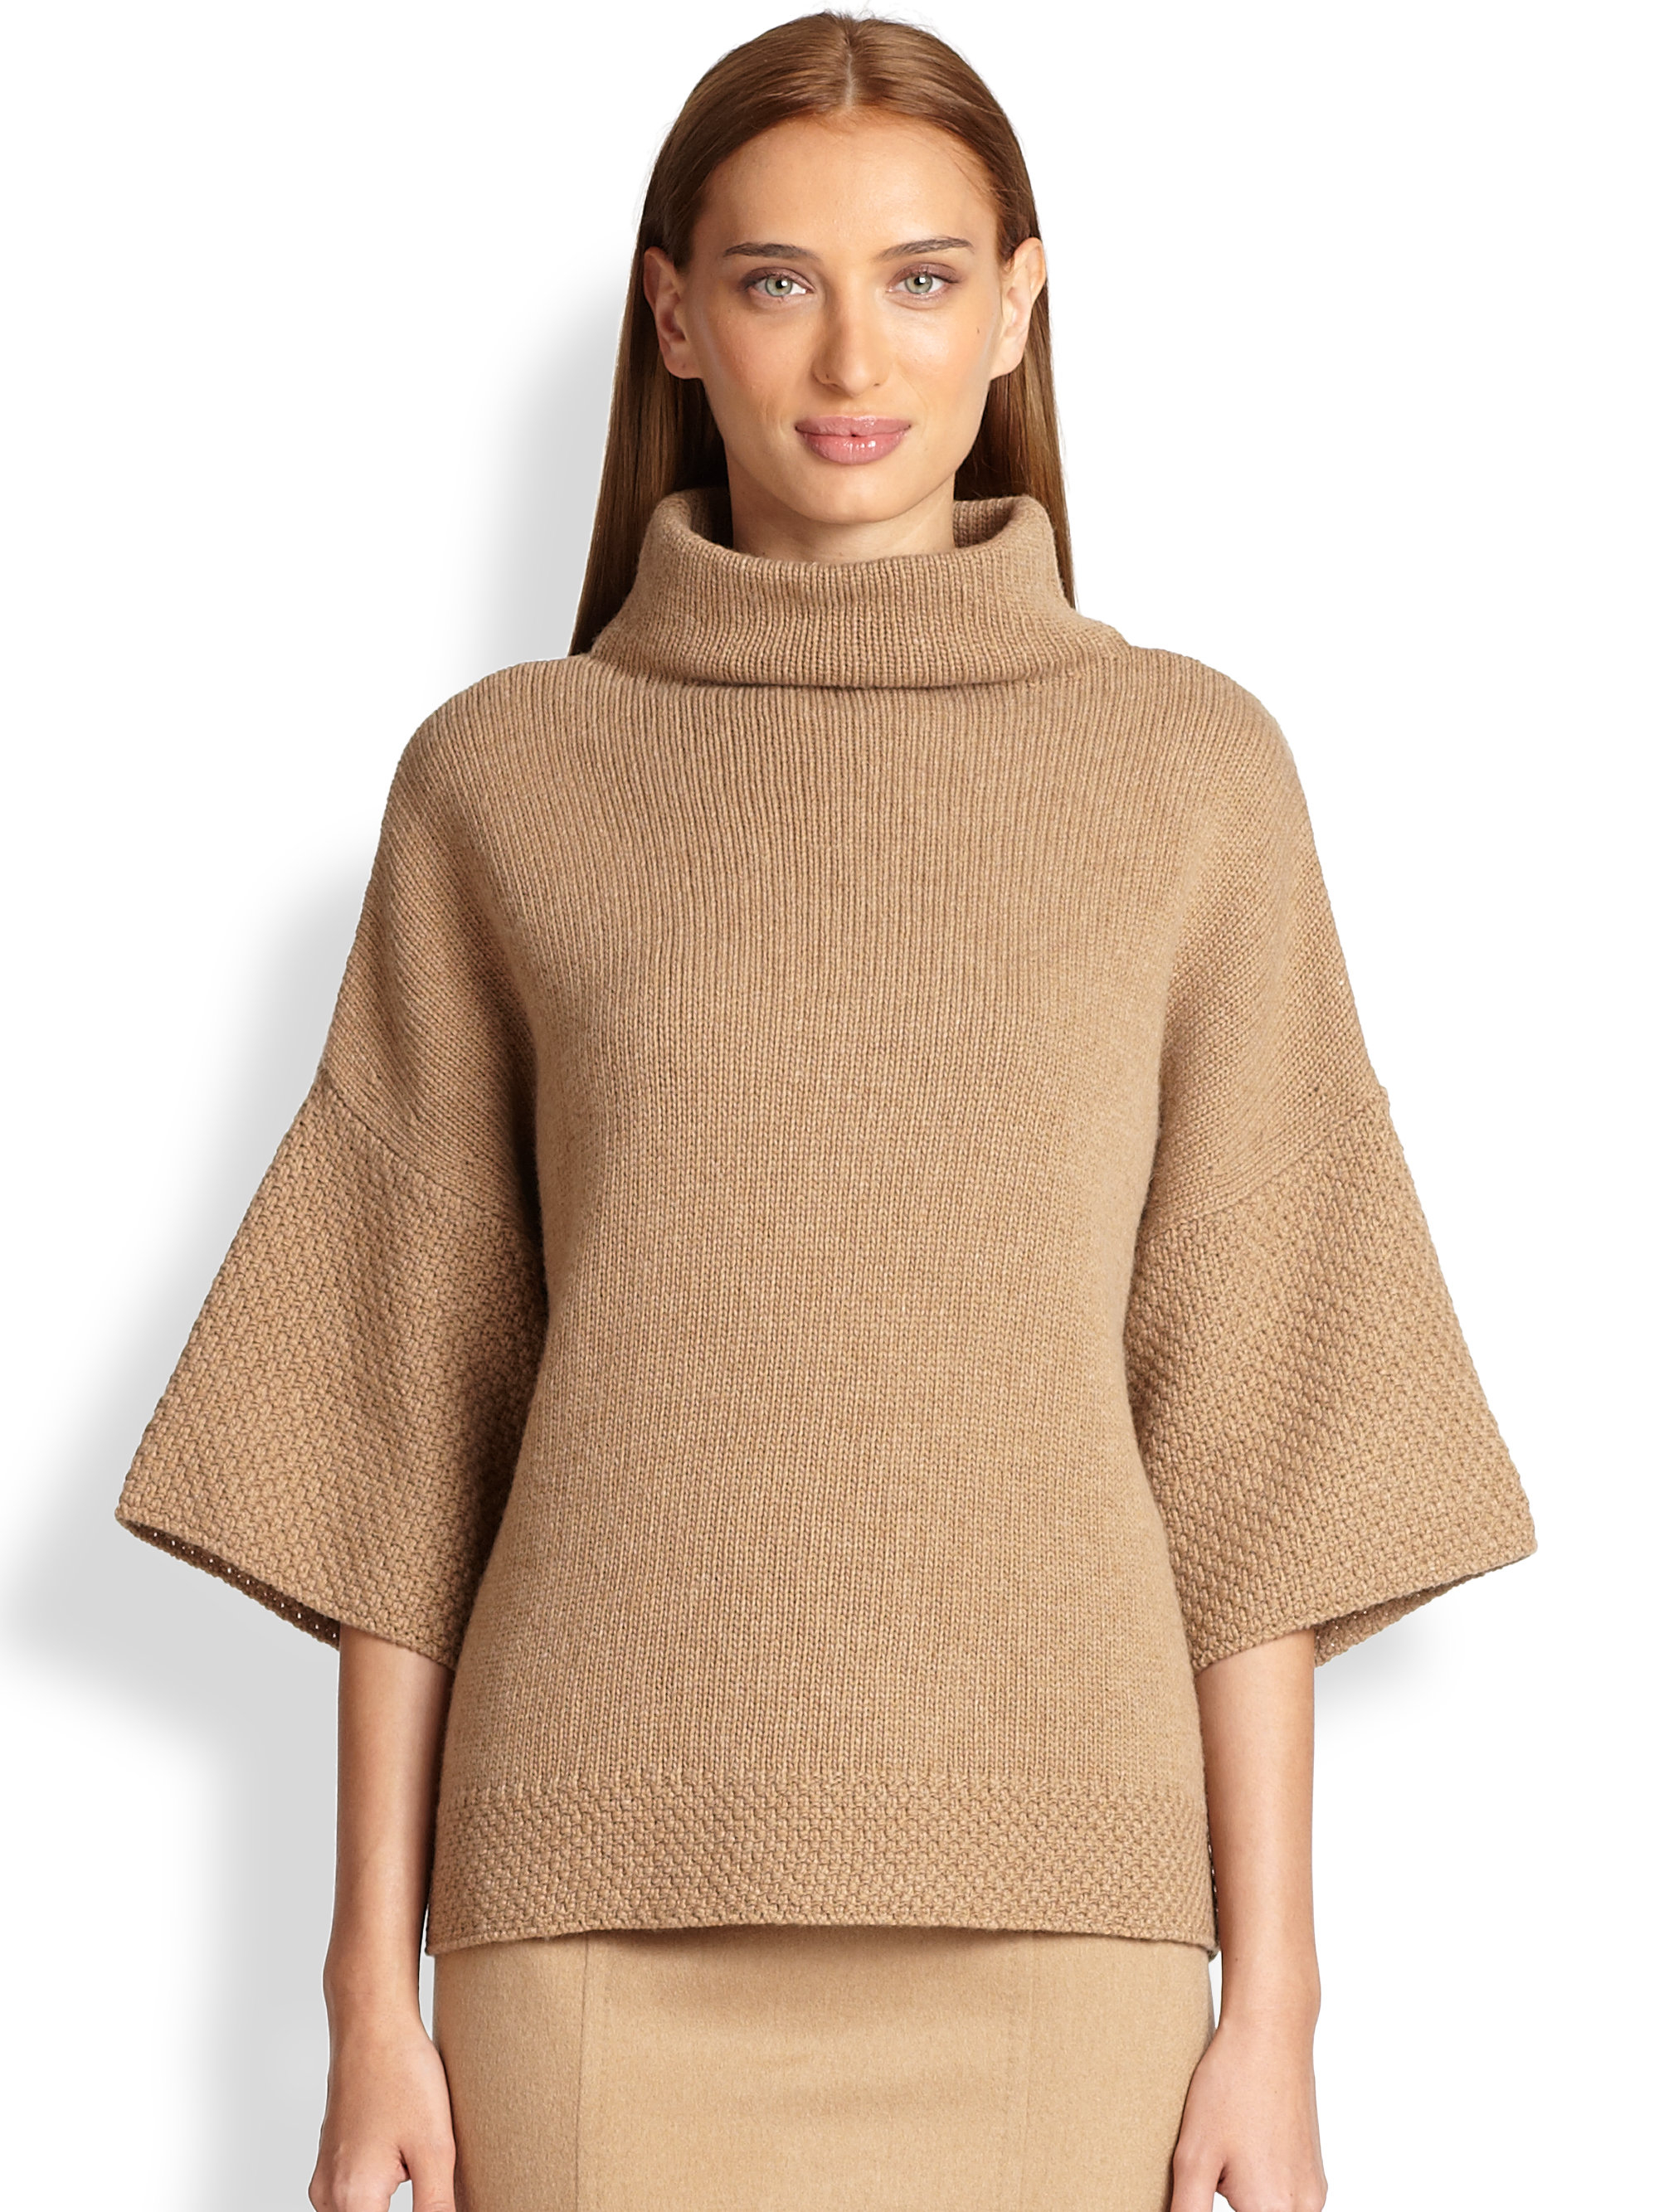 Shop our Collection of Women's Cashmere Sweaters at palmmetrf1.ga for the Latest Designer Brands & Styles. FREE SHIPPING AVAILABLE!